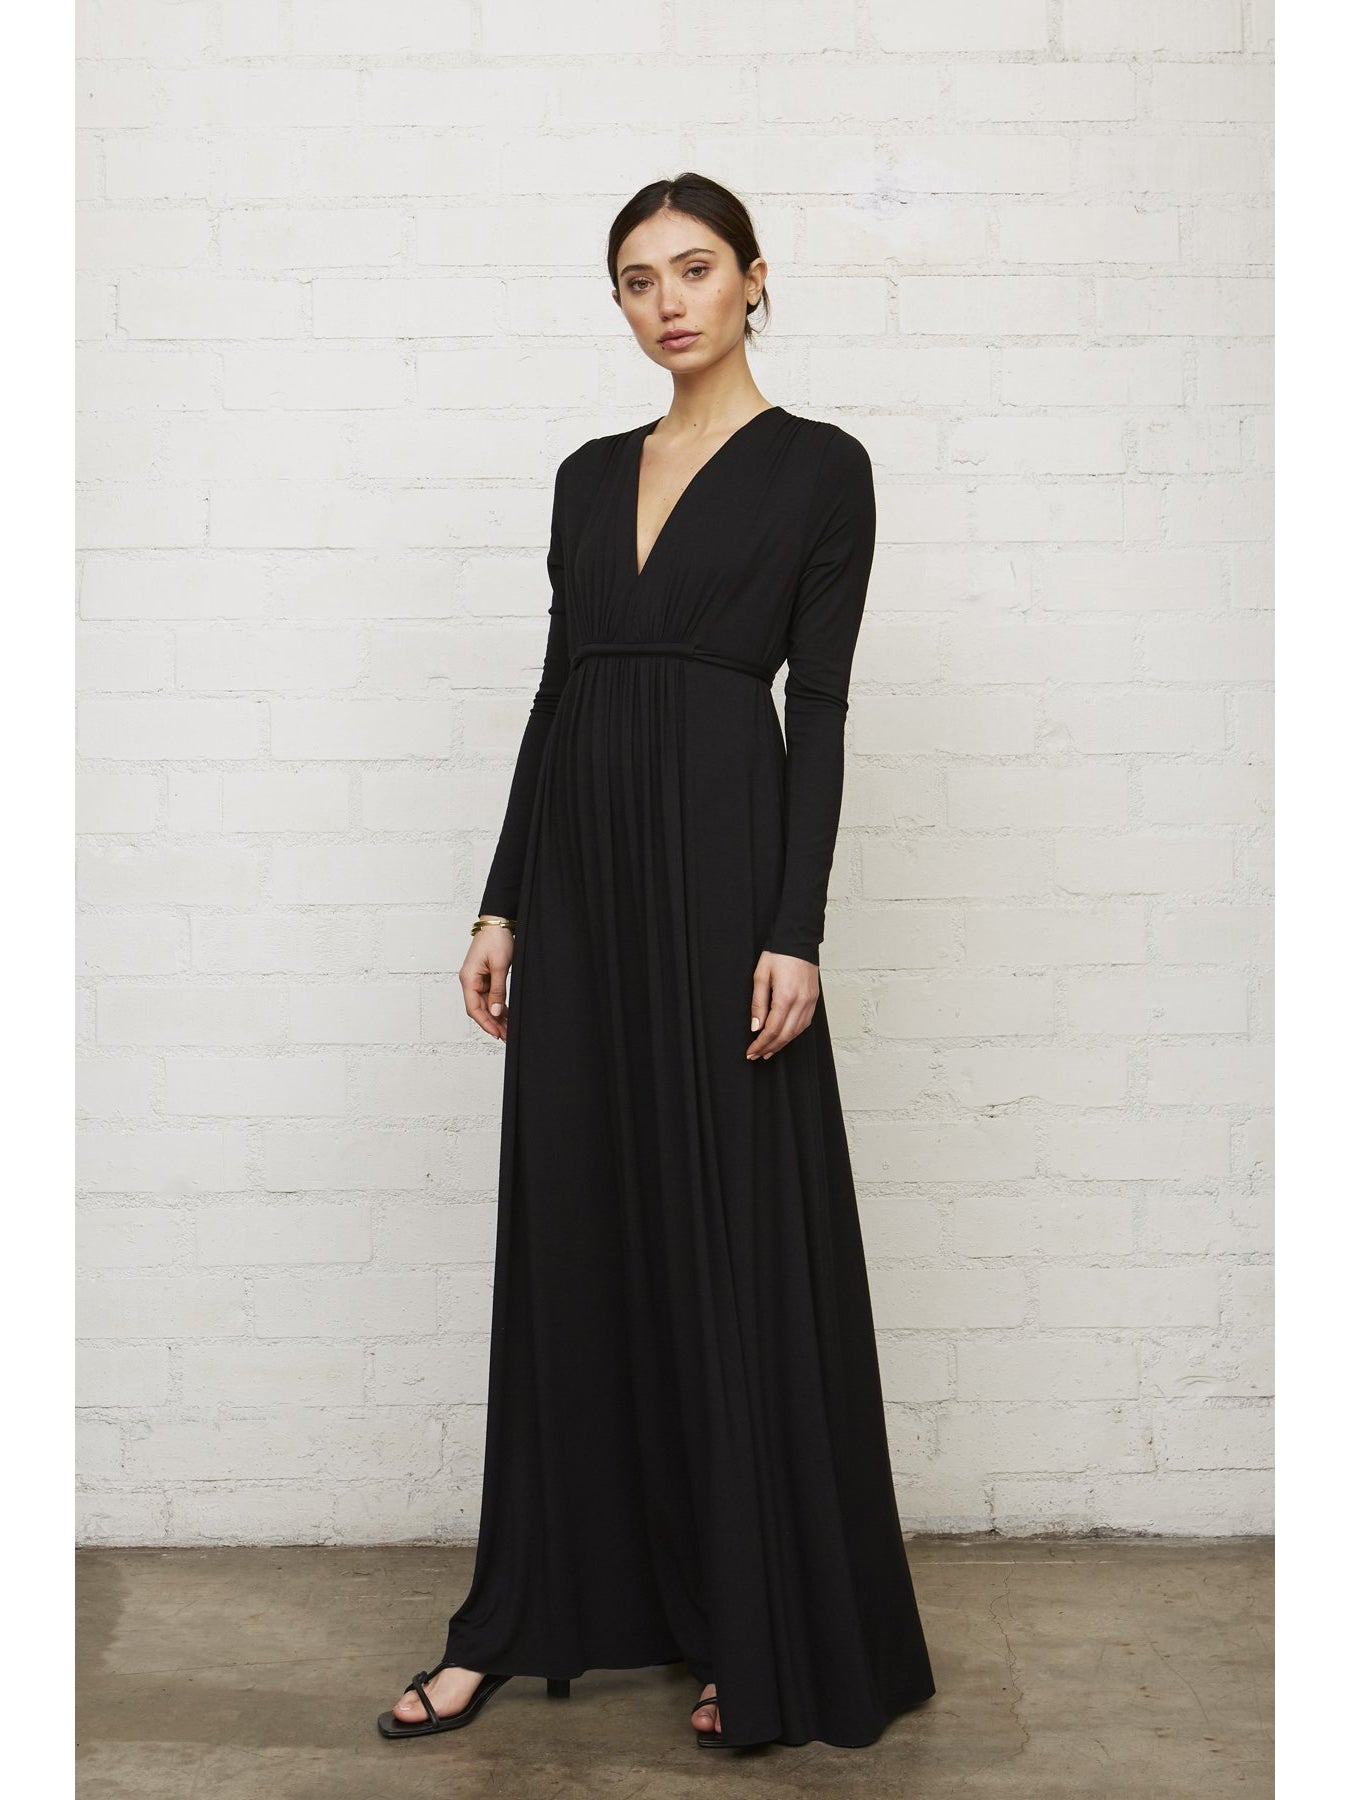 Rachel Pally Maternity Long Sleeve Caftan Maxi Dress - Black | TILDEN